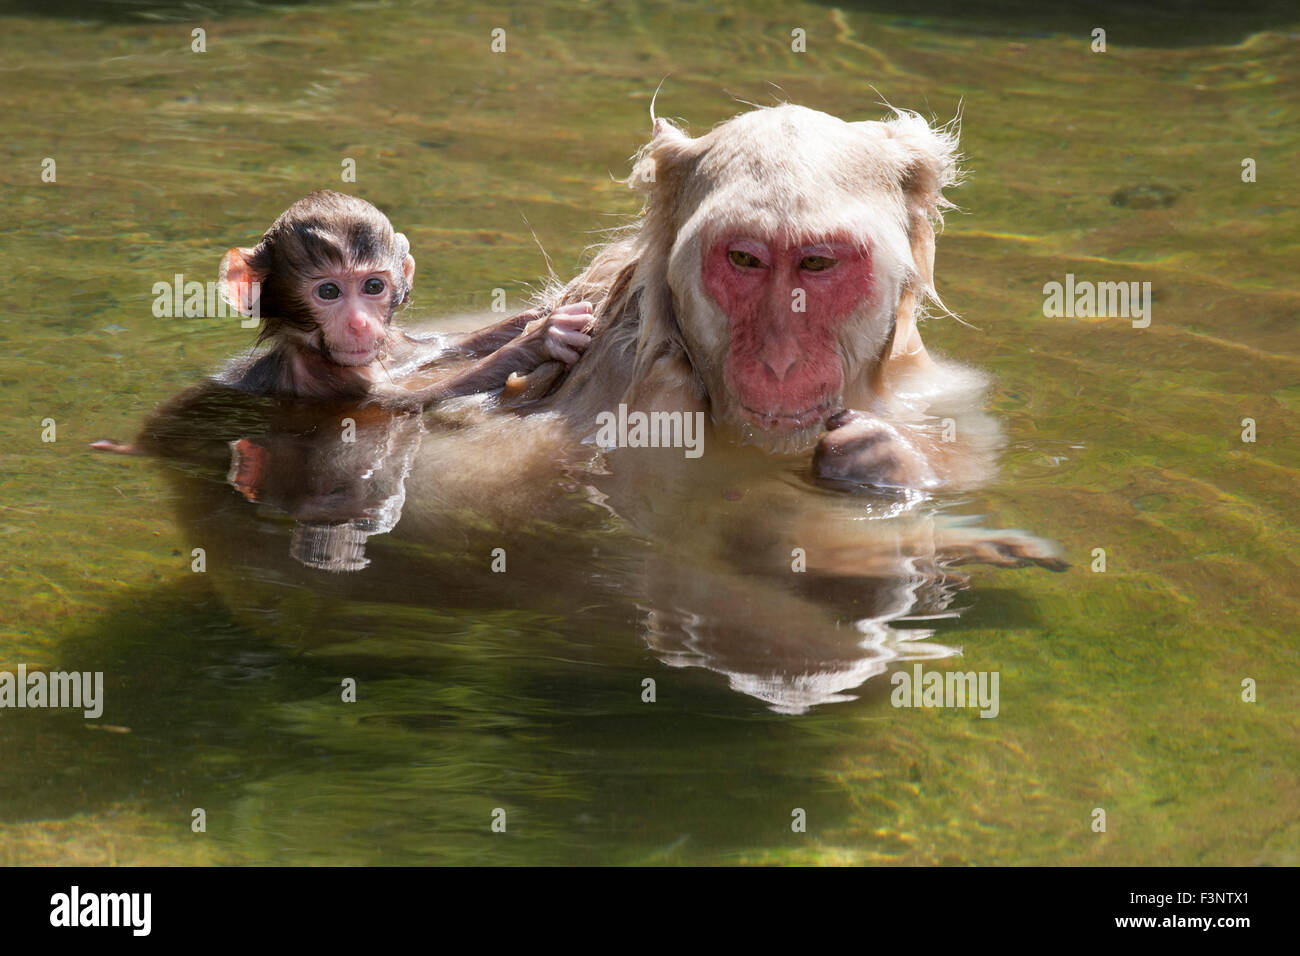 Japanese Macaque (Macaca fuscata) baby clinging to mother's back in hot spring - Stock Image